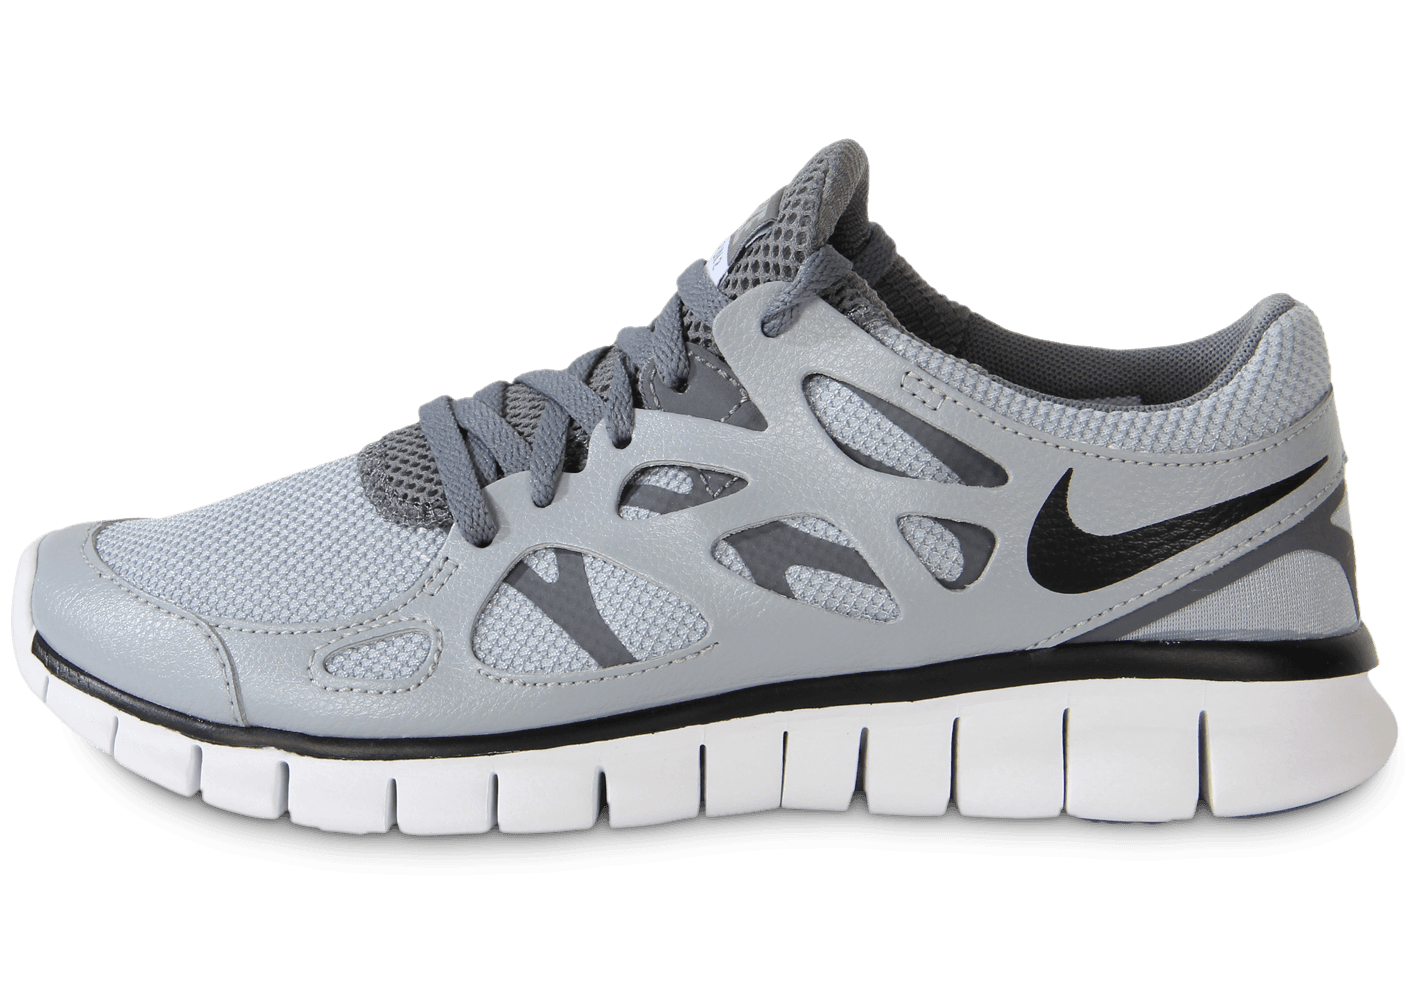 best sneakers 7d535 6d4f8 Nike Free Run 2 Ext Grise - Chaussures Chaussures - Chausport